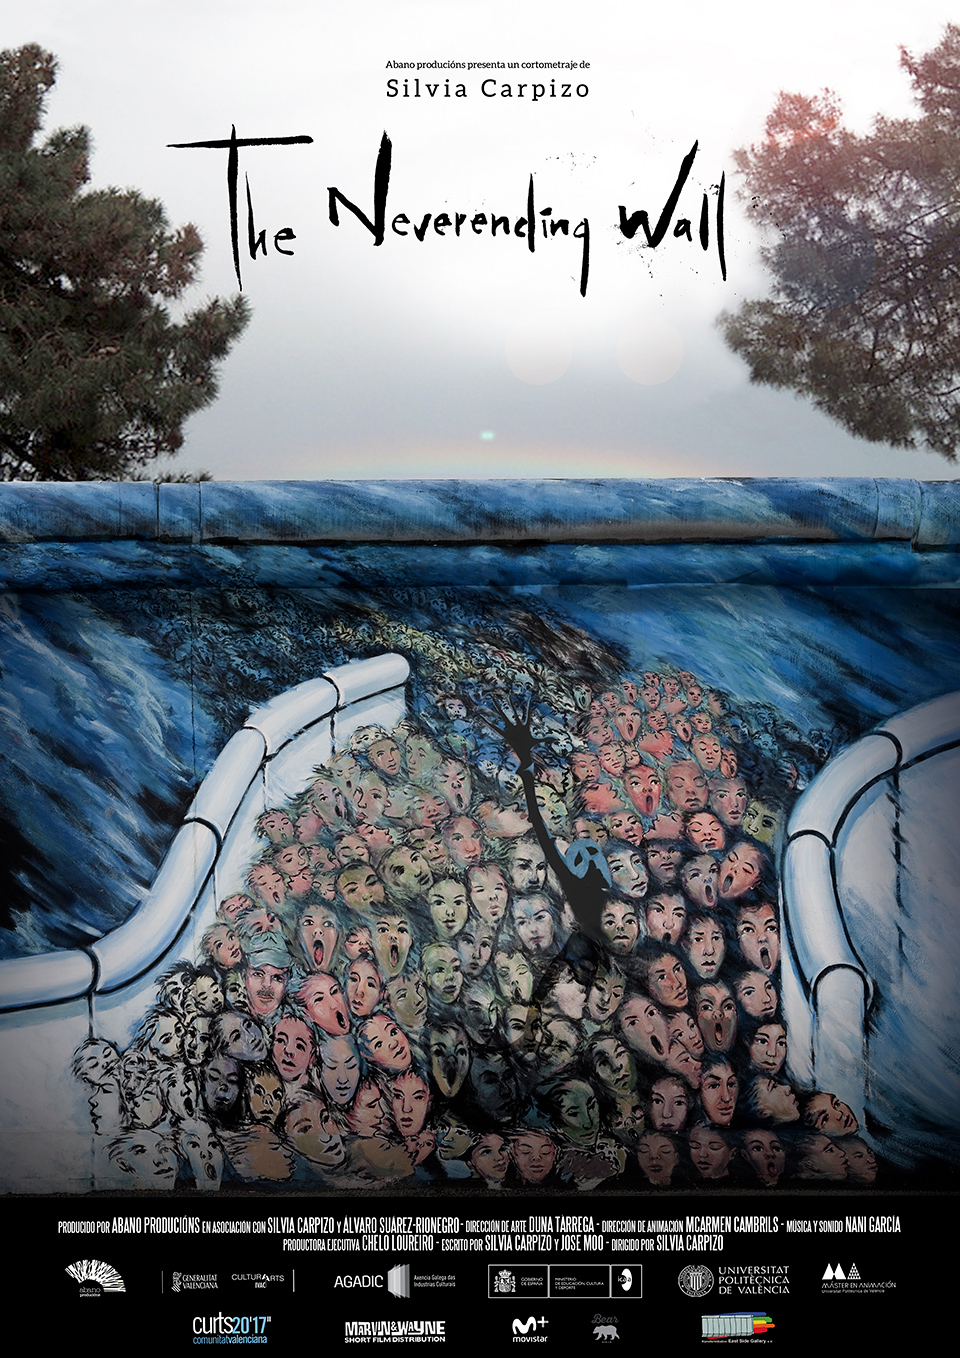 the-neverending-wall-cortos-festival-cine-mujeres-zgz-2018